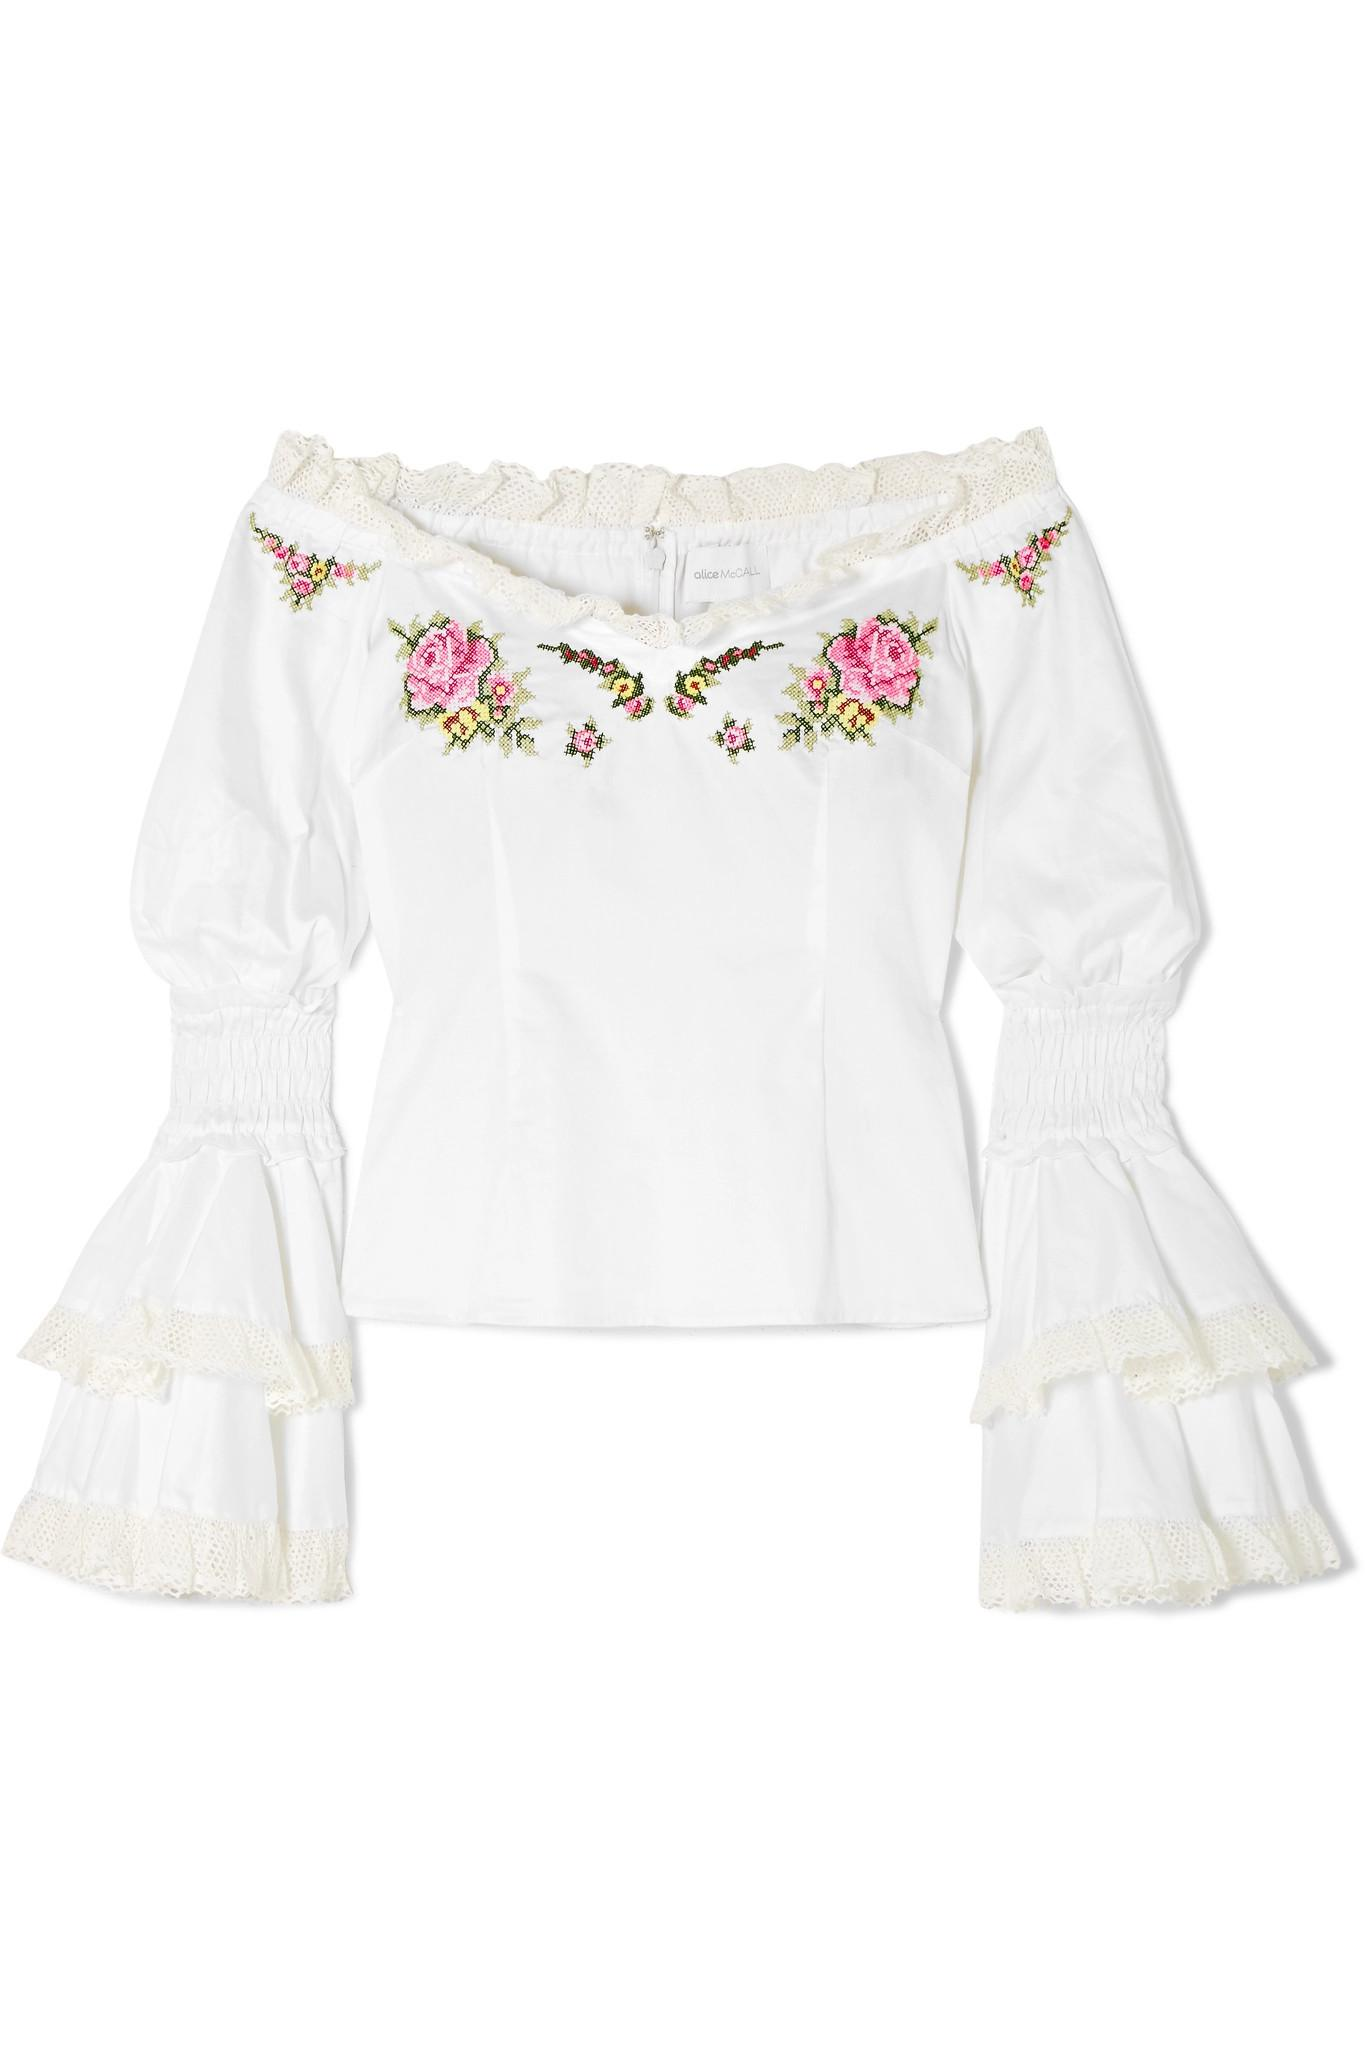 Buy Cheap 2018 Bon Voyage Off-the-shoulder Embroidered Cotton Blouse - White Alice McCall Outlet Countdown Package Buy Cheap Wide Range Of Cheap Choice Marketable Sale Online AddymlaM